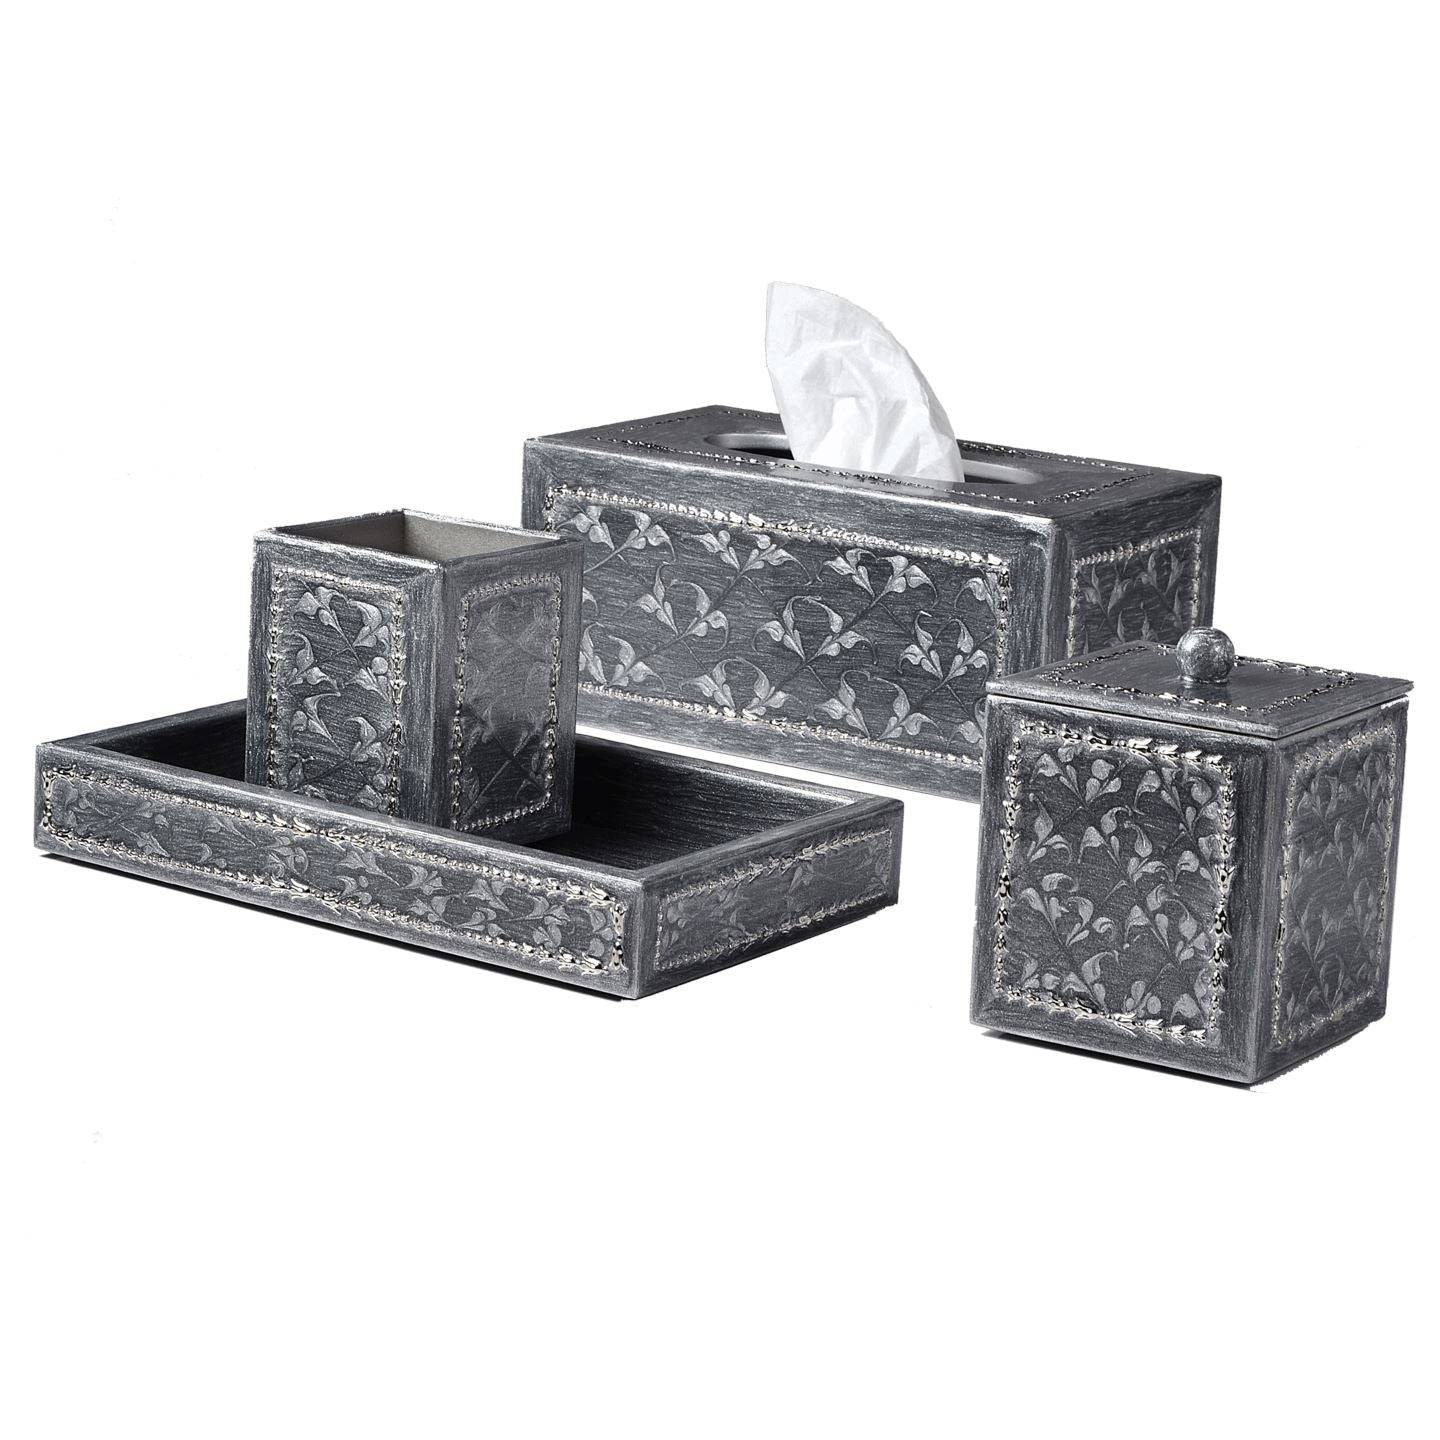 Mike + Ally Fiona Platinum Bath Accessories by Mike + Ally